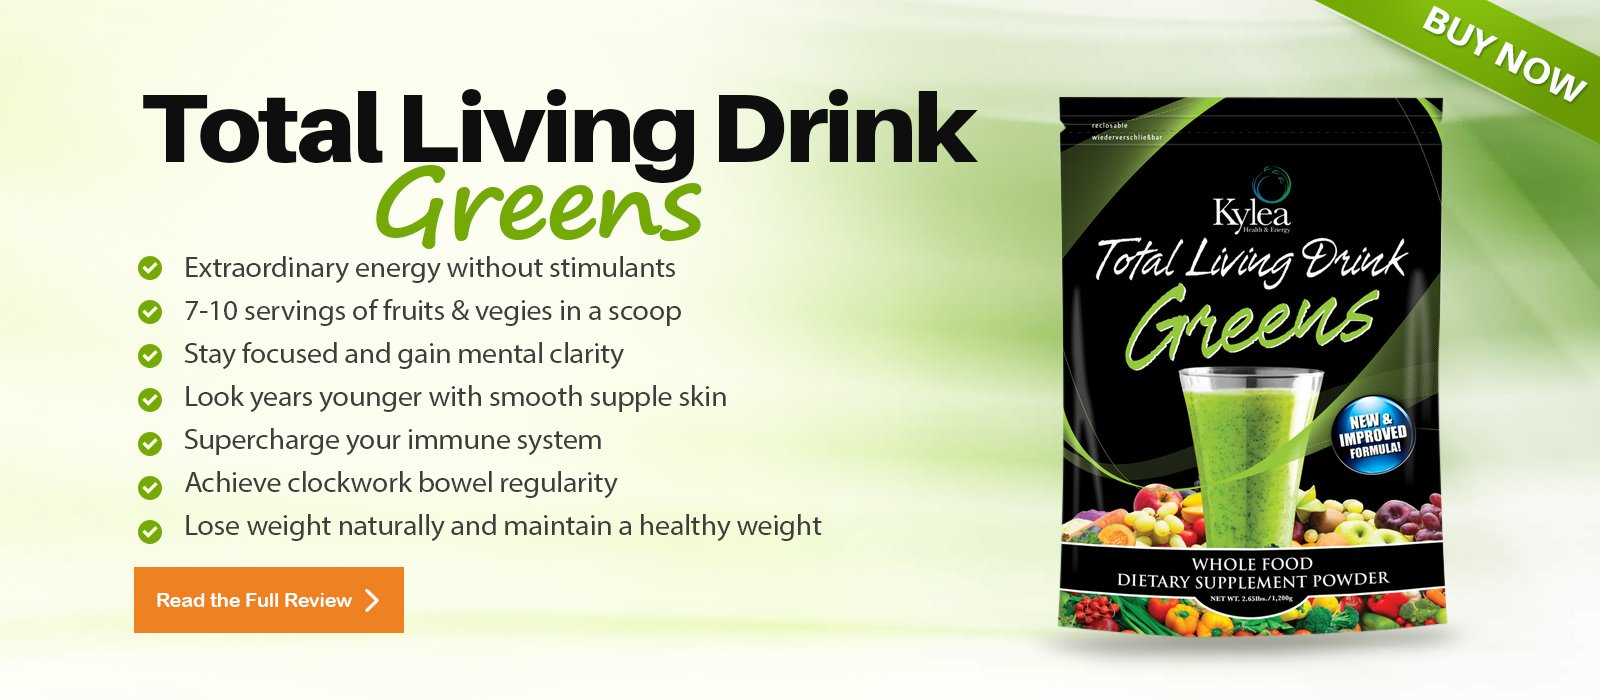 Total Living Drink Greens Superfood Powder - (2.65 lbs bag, 30 servings, 60 ingredients) - Enzymes, Antioxidants, Herbs, Probiotics, Vitamins and Minerals.